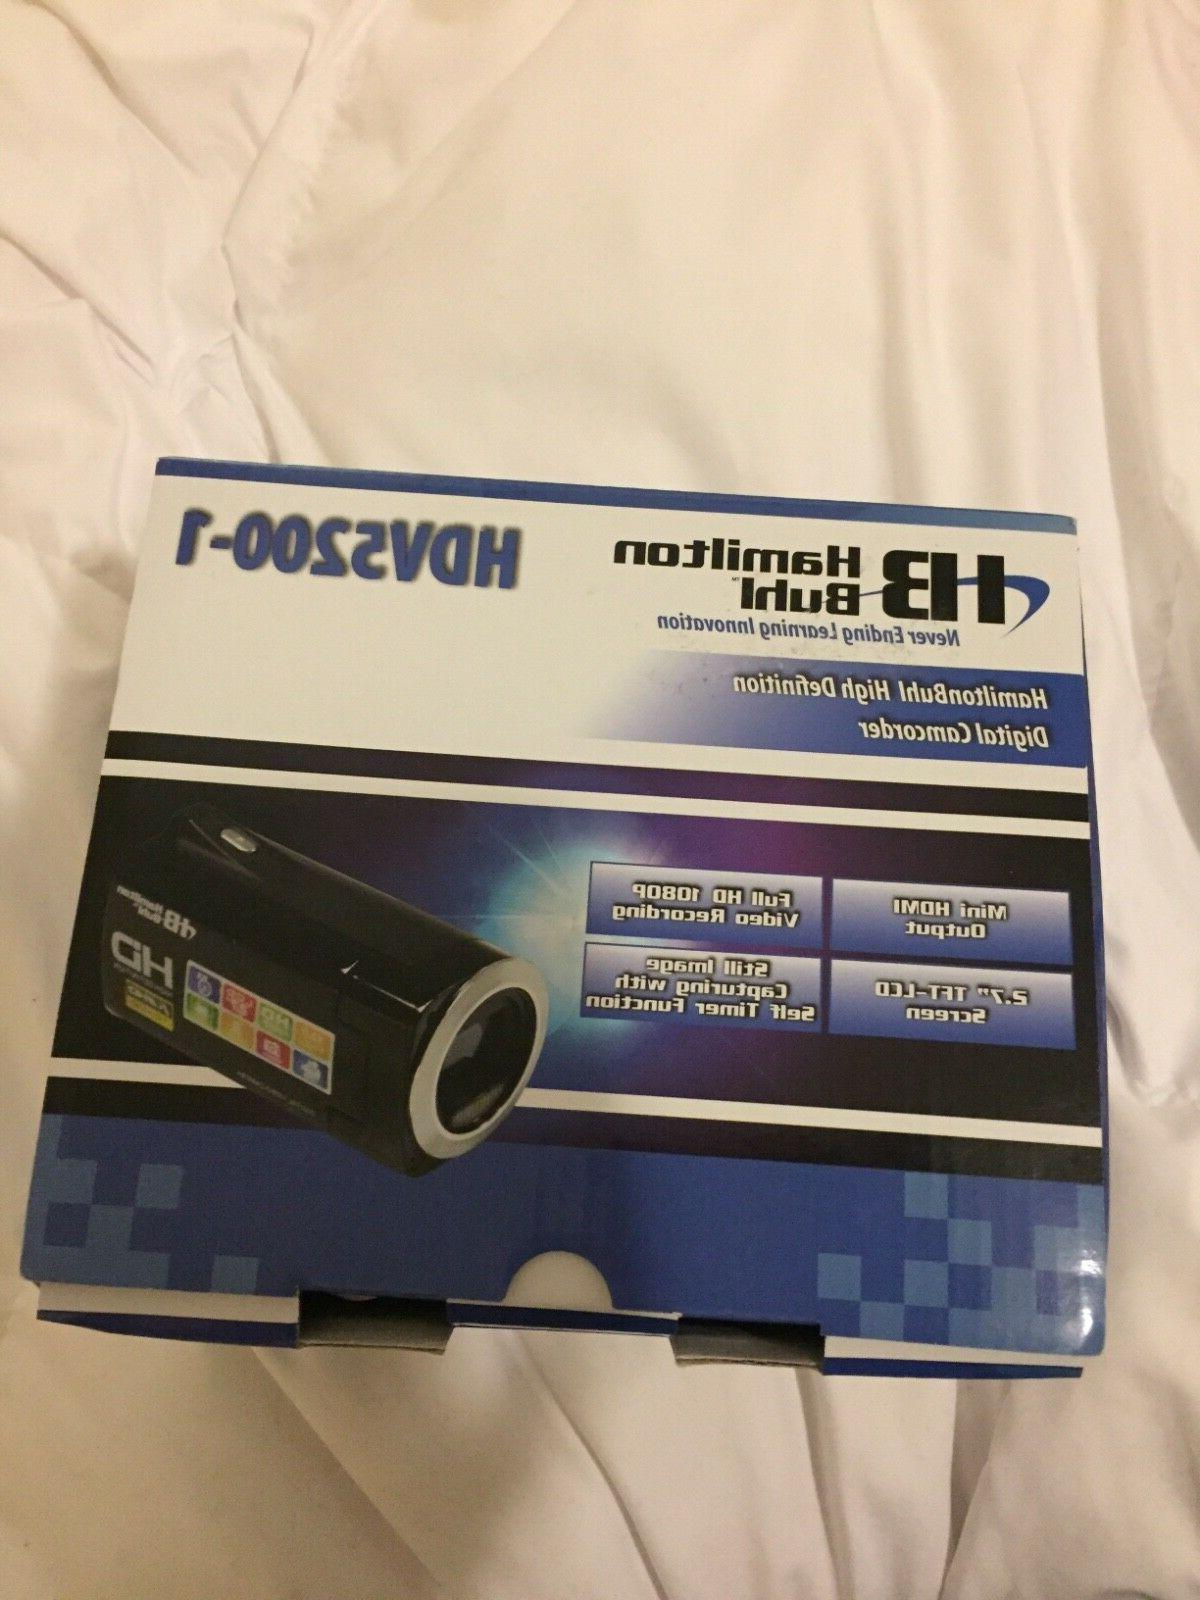 new hdv52001 high definition camcorder hdmi 2